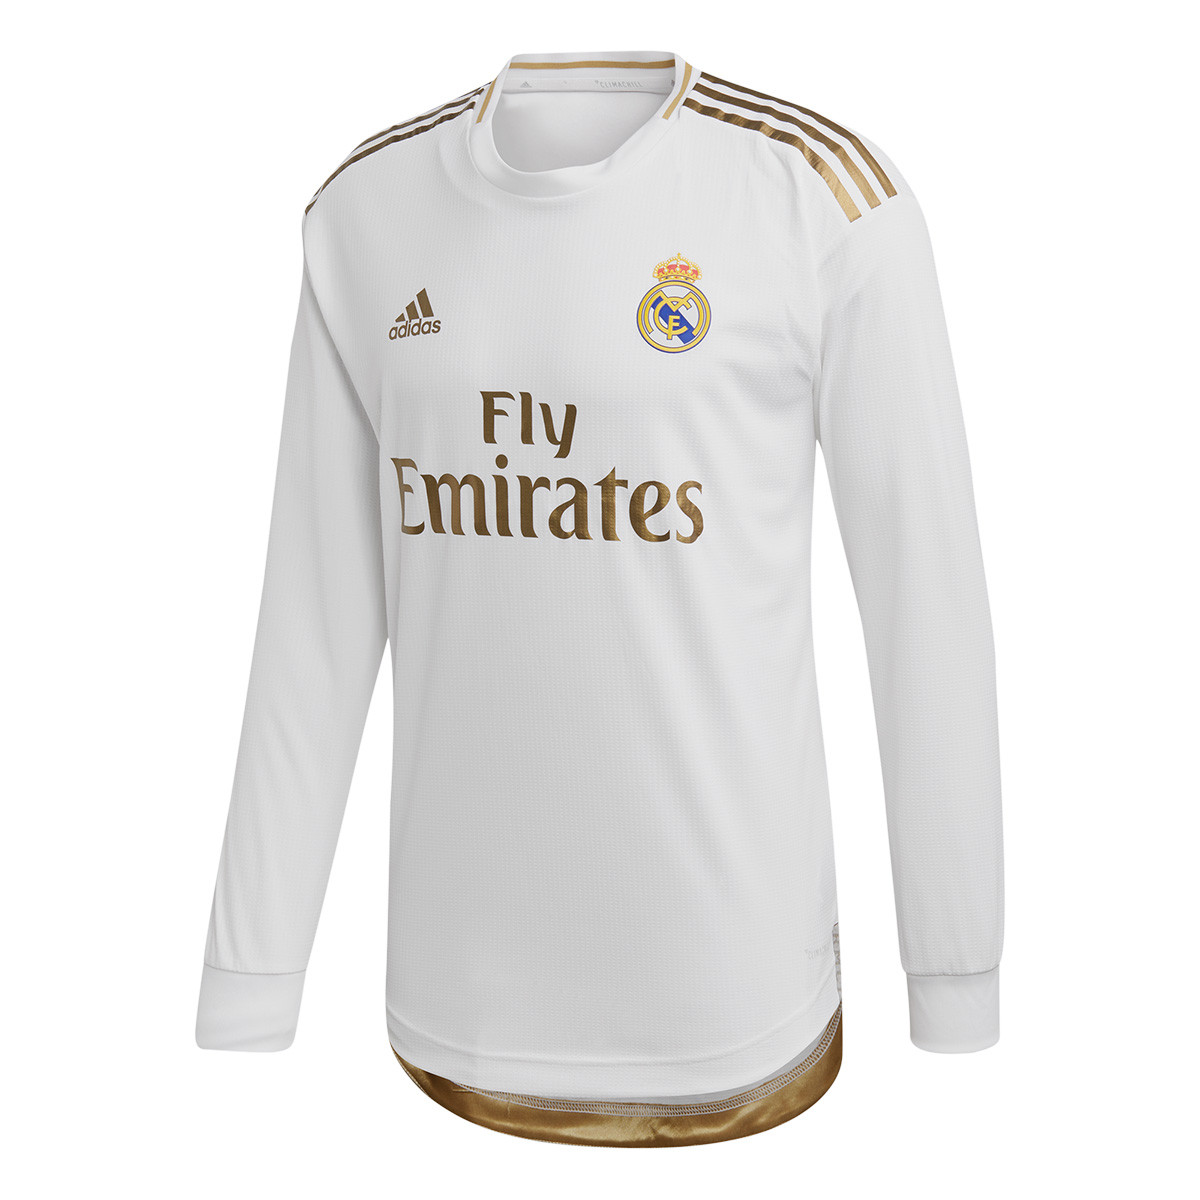 Maillot adidas Real Madrid Domicile Authentic 2019 2020 LS